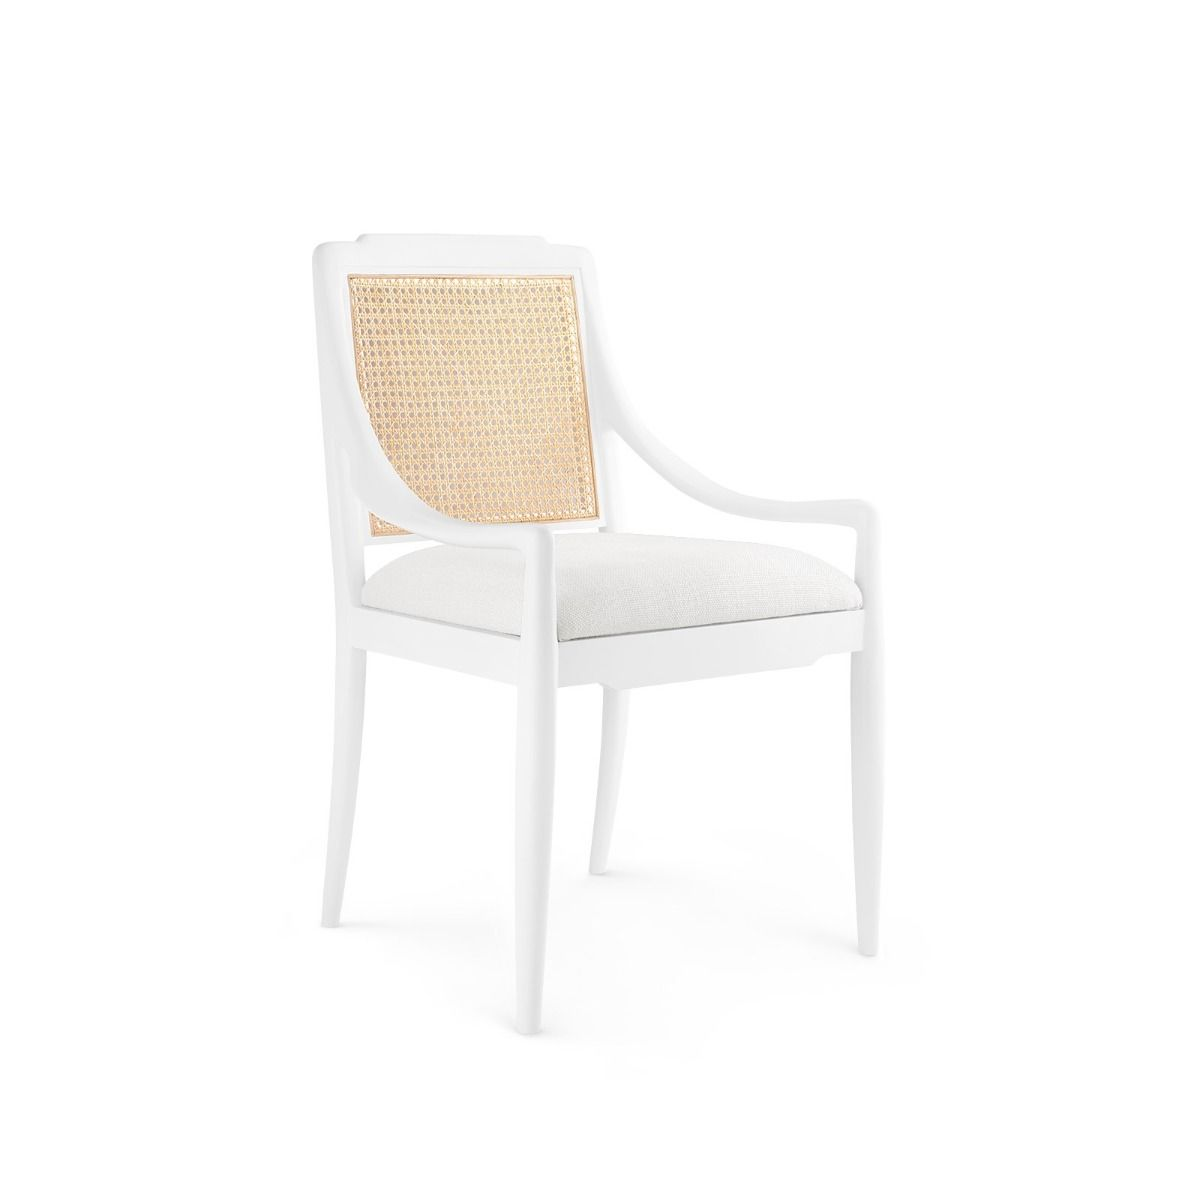 Bungalow 5 - VERONIKA ARMCHAIR, WHITE